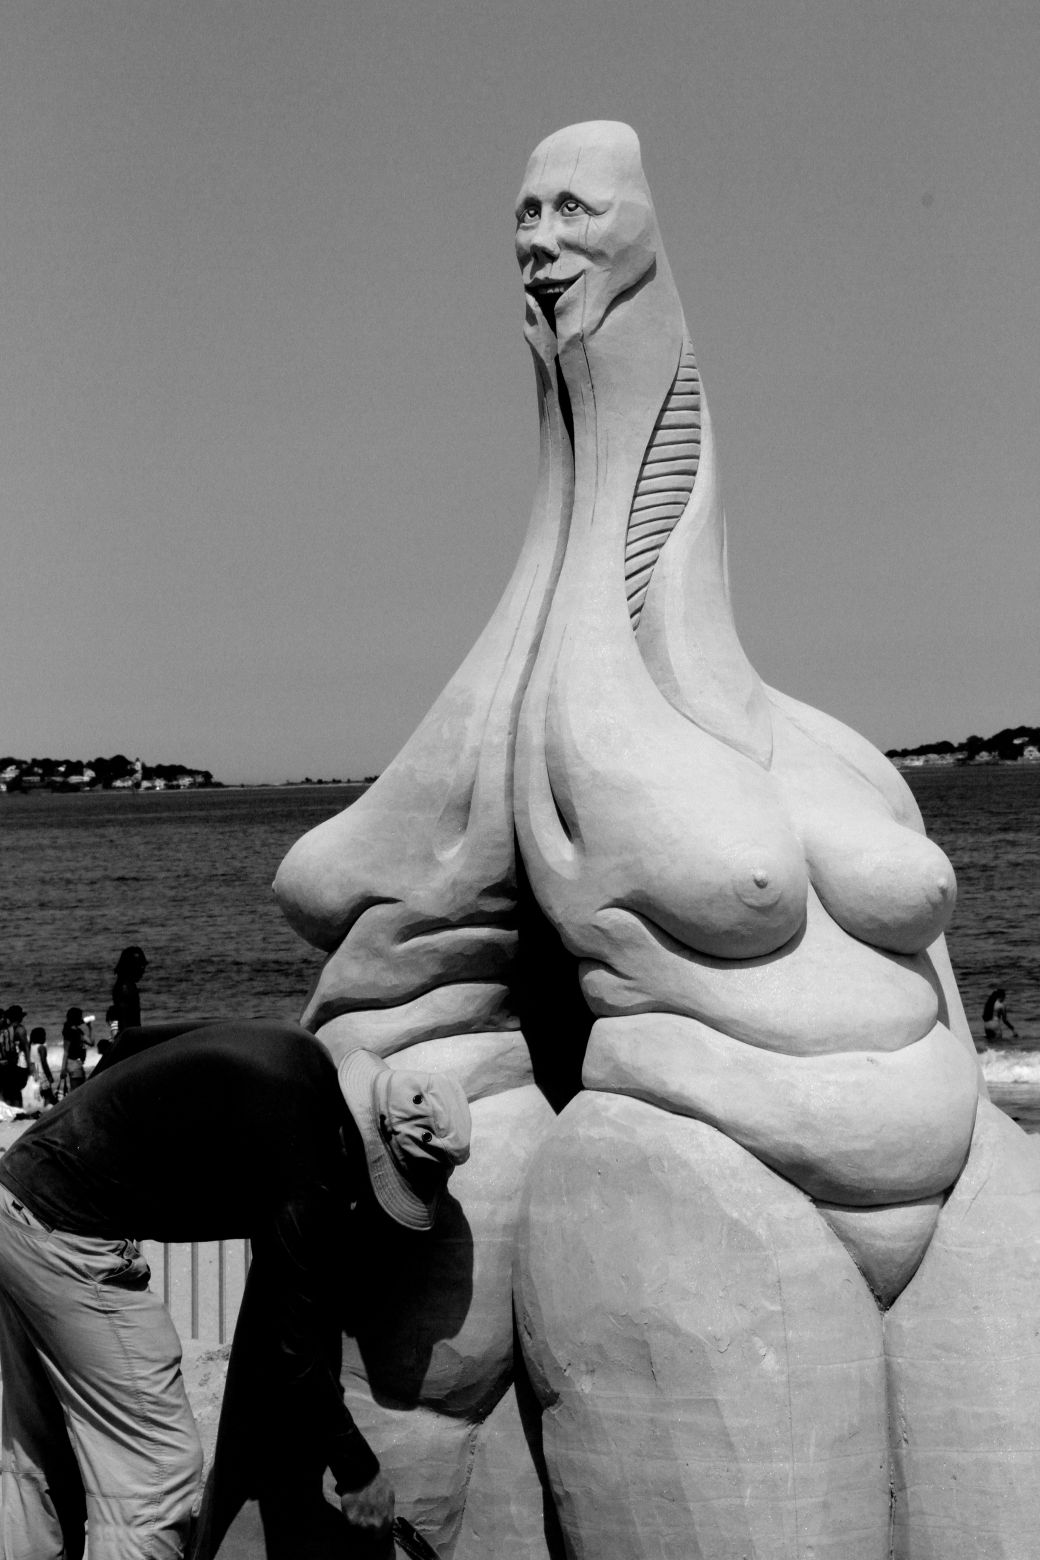 boston revere beach sand sculpting festival july 18 11